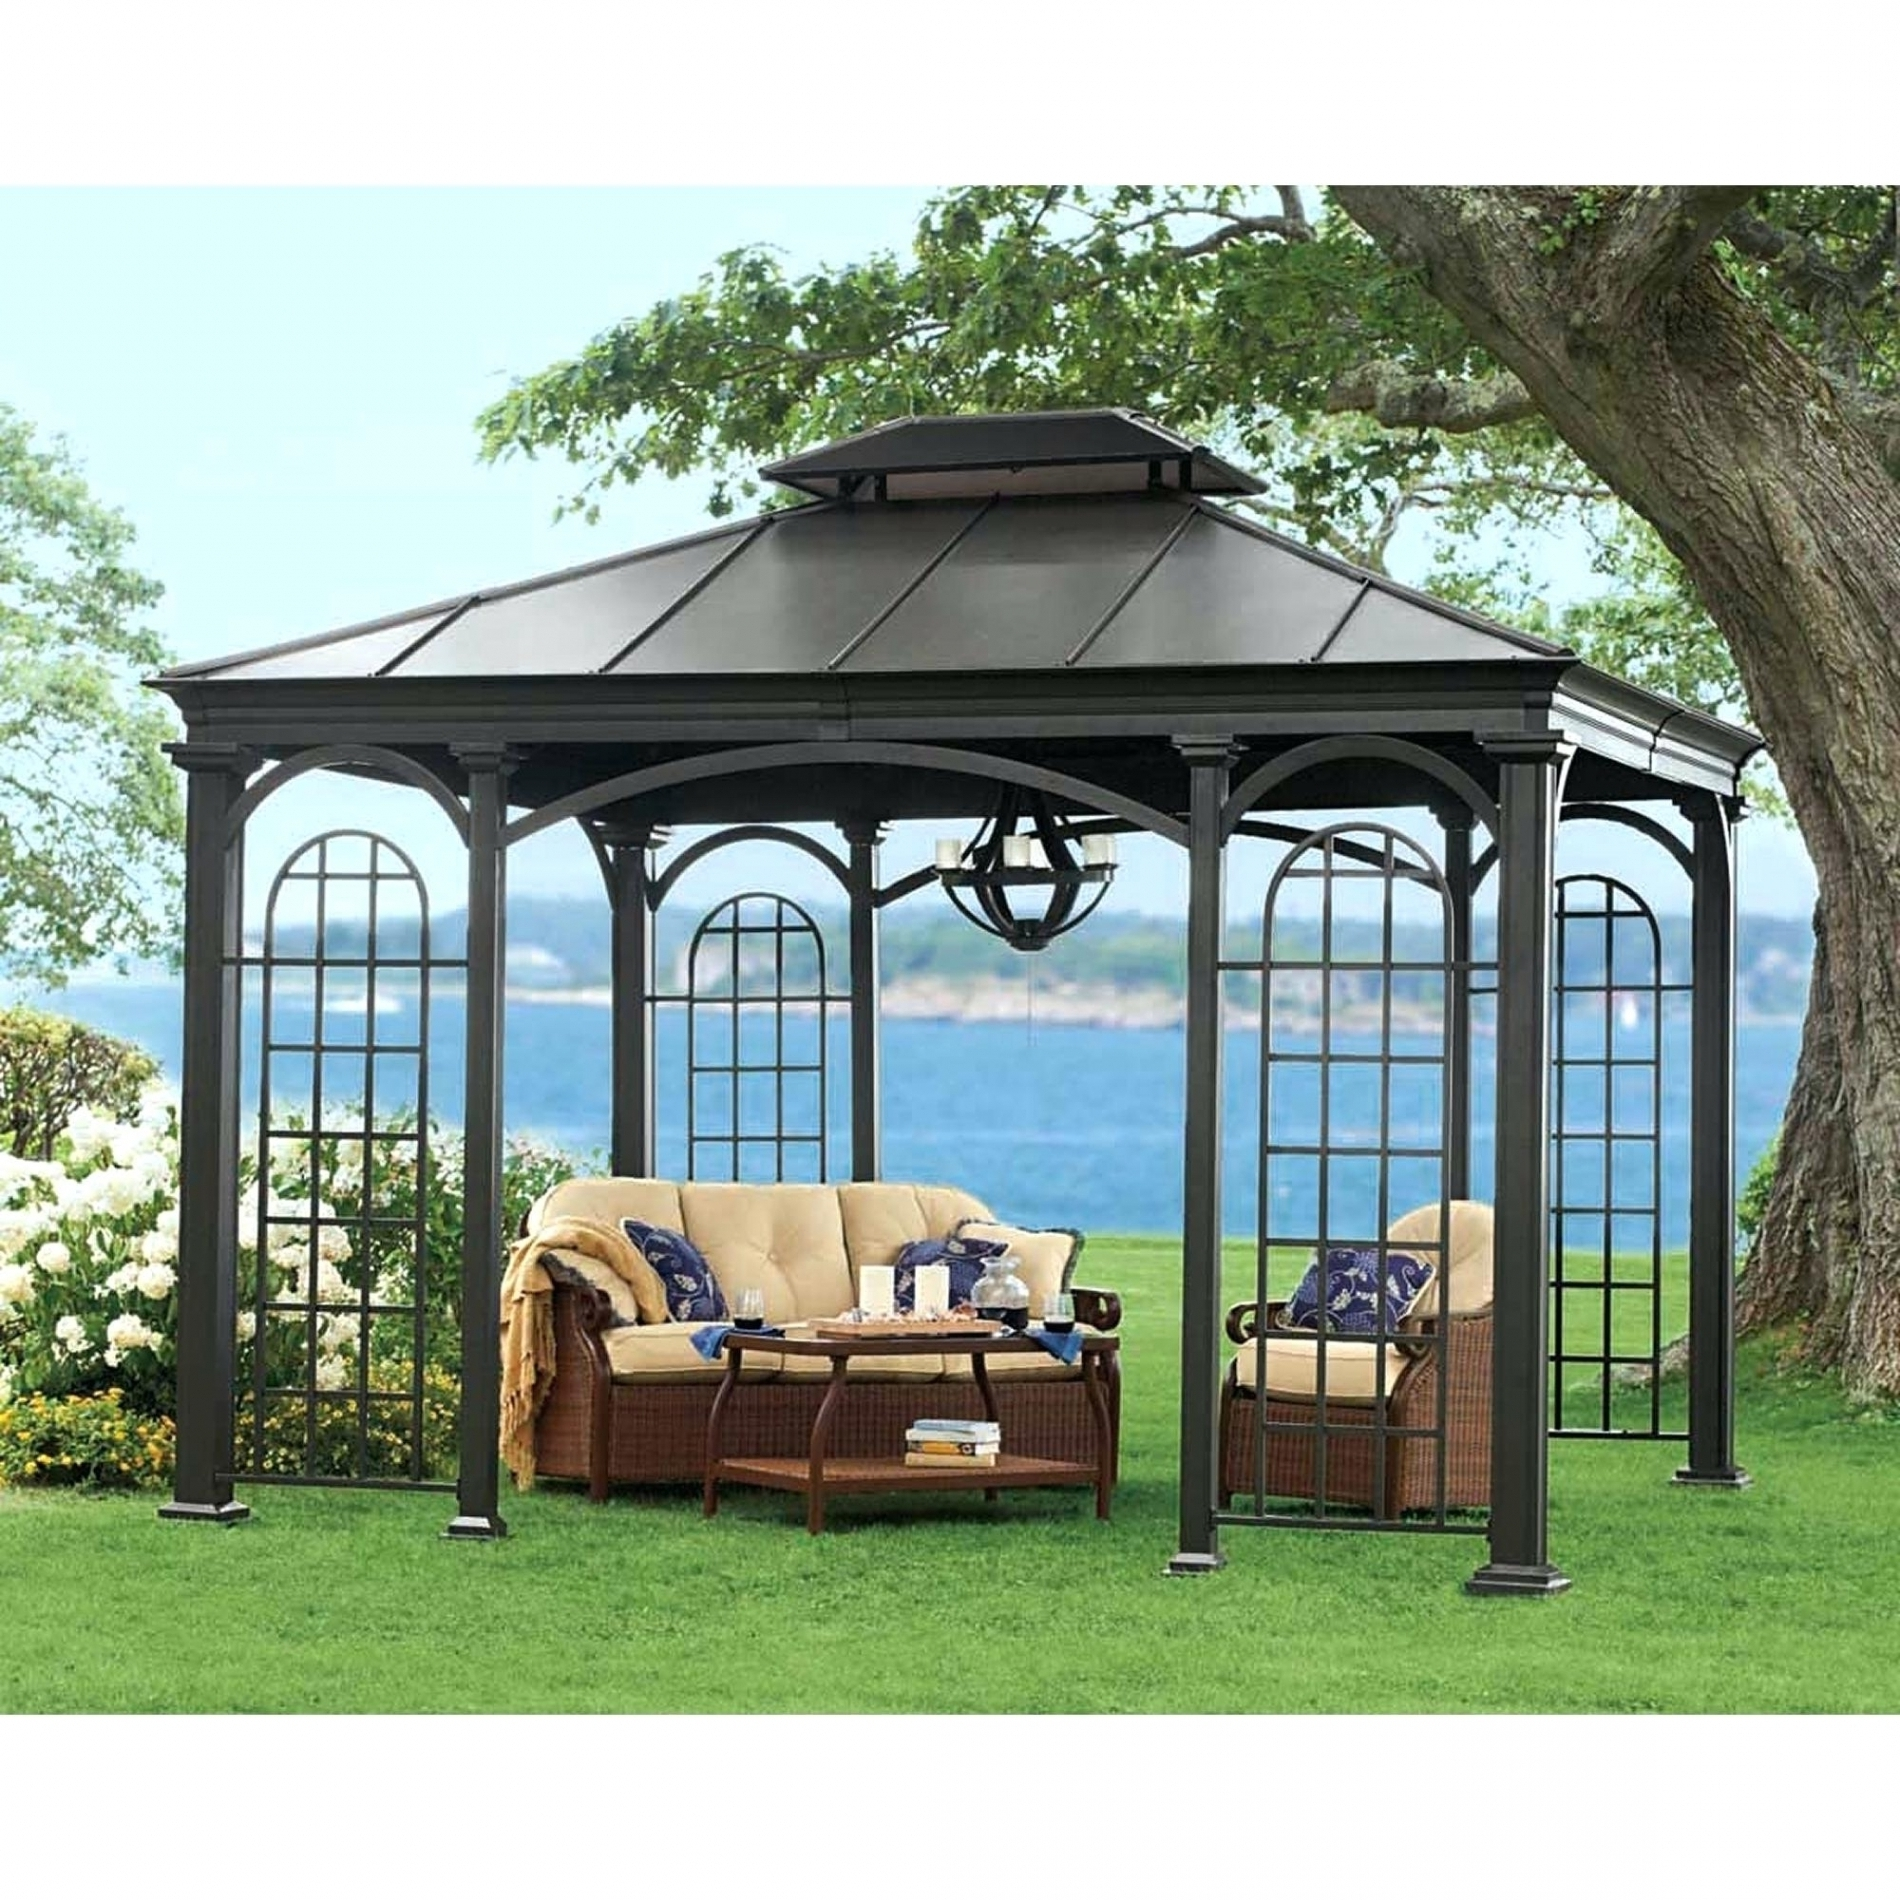 Widely Used Rona Patio Rocking Chairs With Gazebo Rona Hardtop Gazebos For Ontario Clearance Throughout Patio (View 17 of 20)